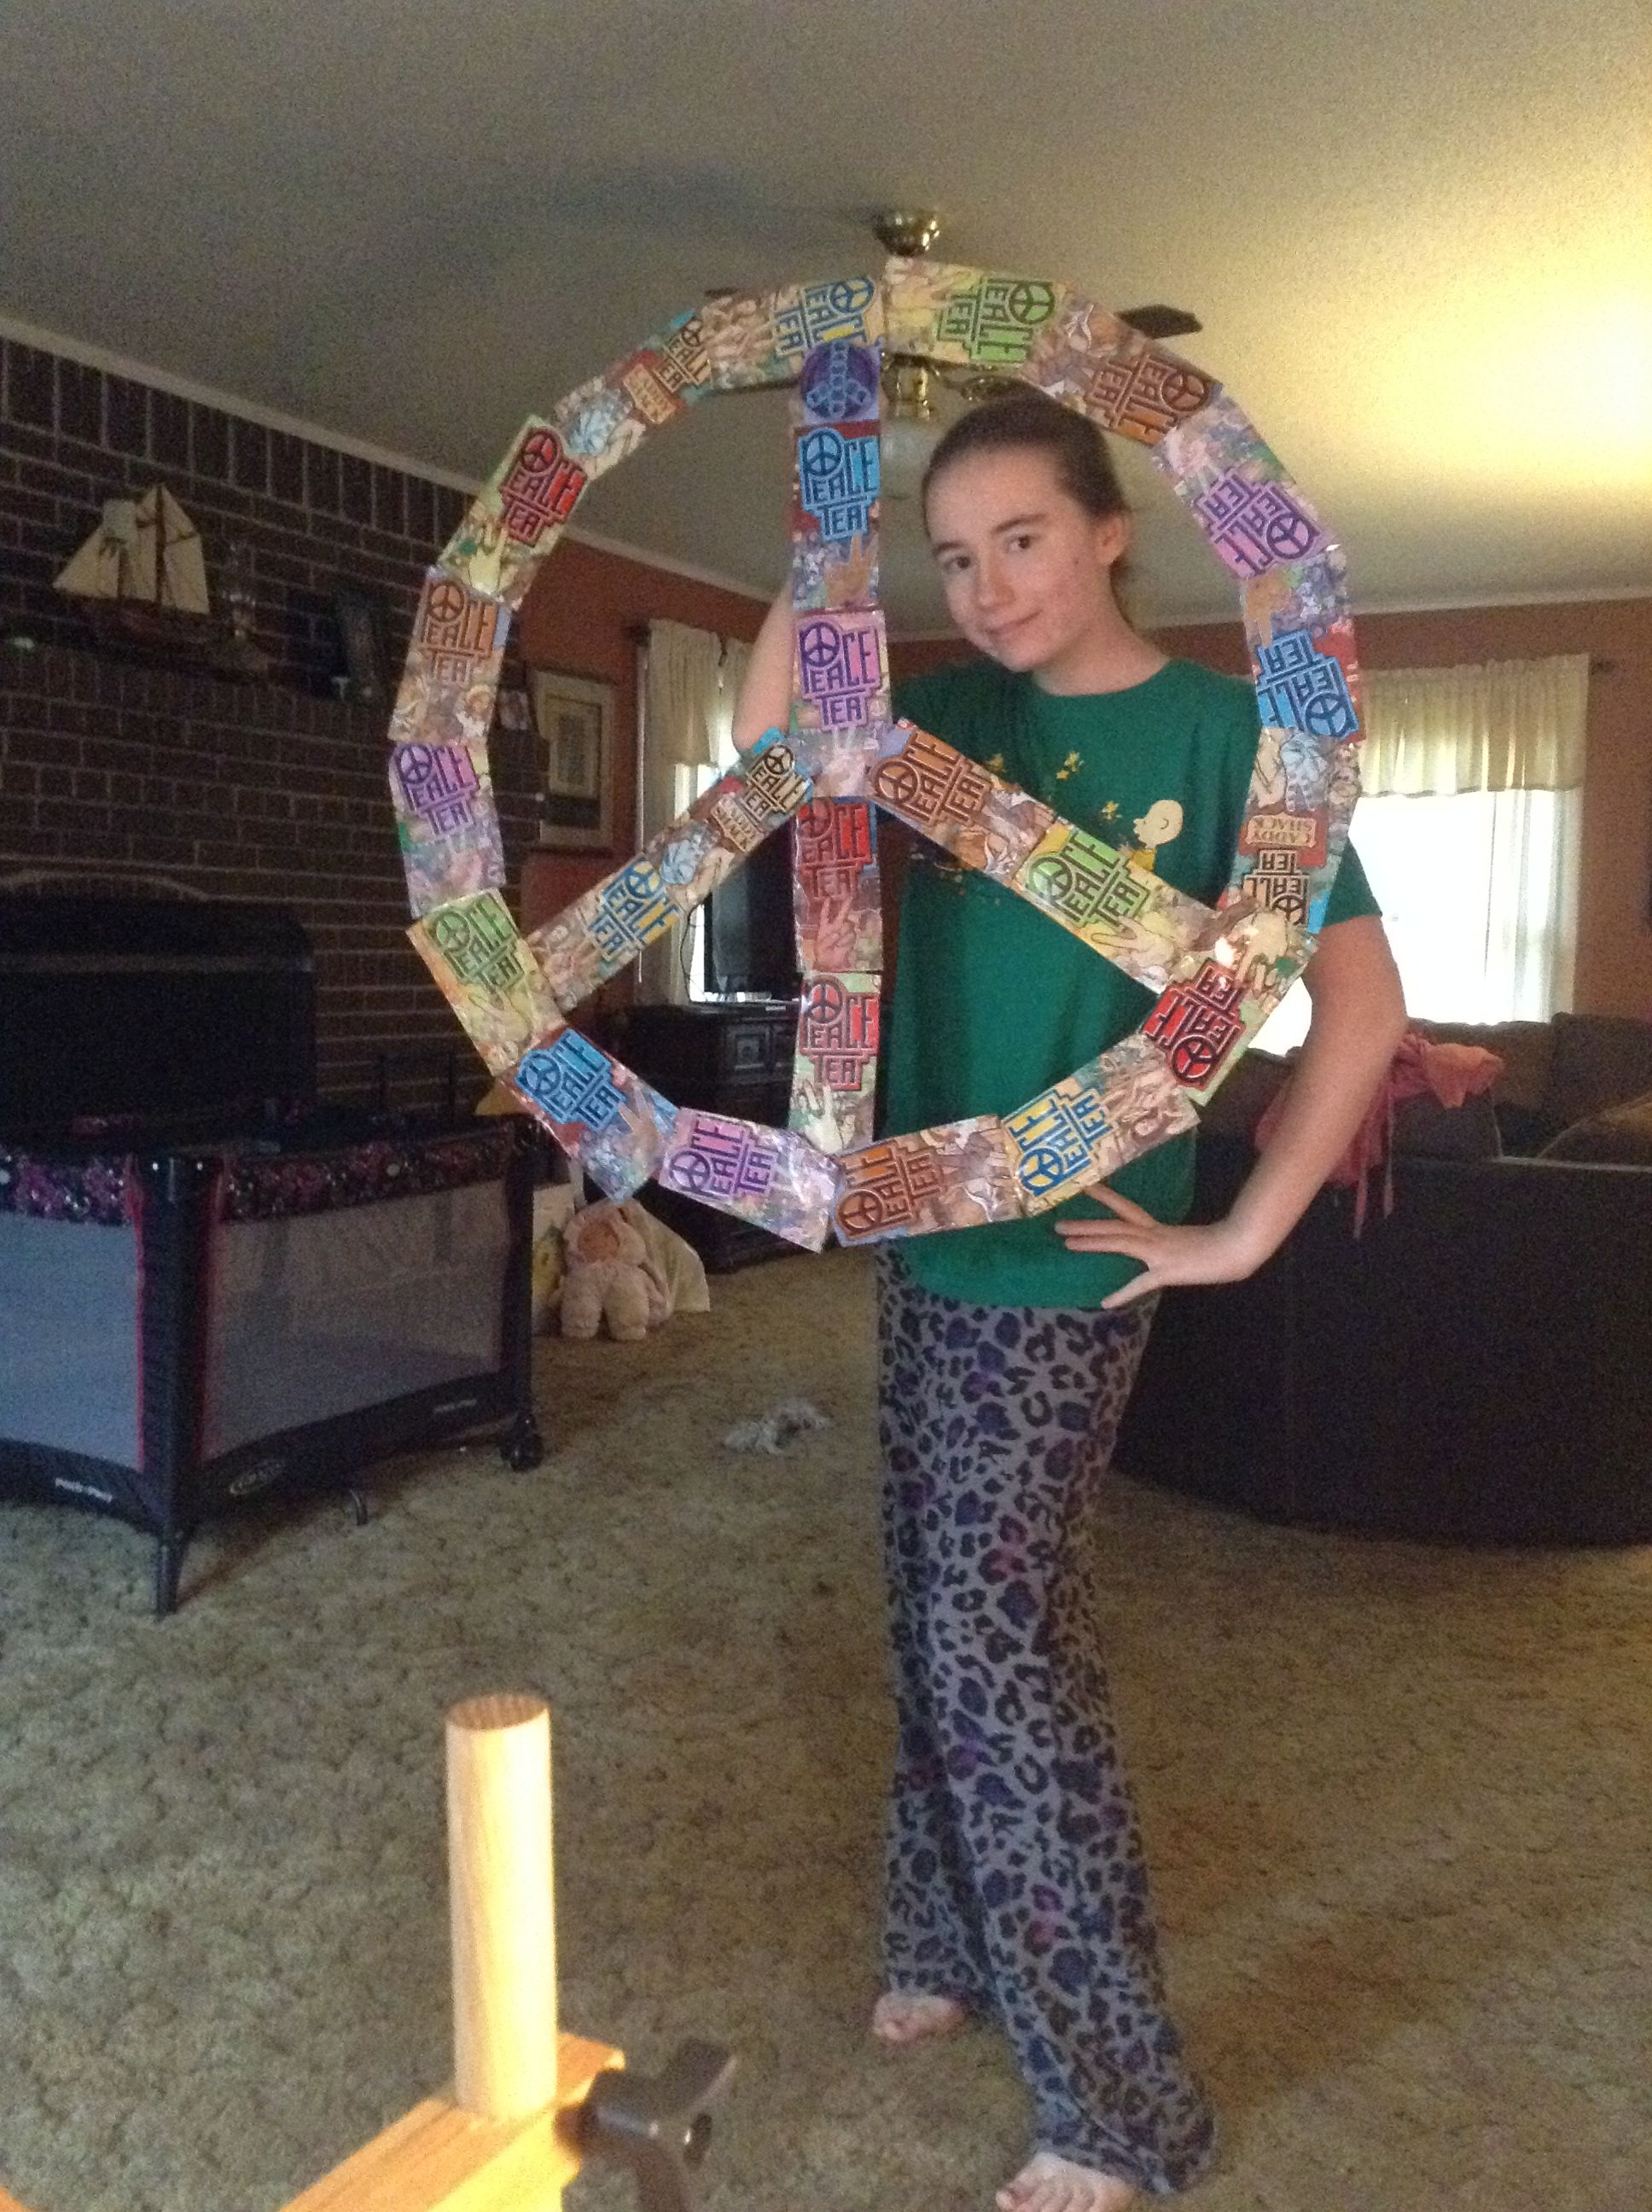 Peace Sign Bedroom Decor Recycled Some Peace Tea Cans And An Old Tri Board Into A Giant